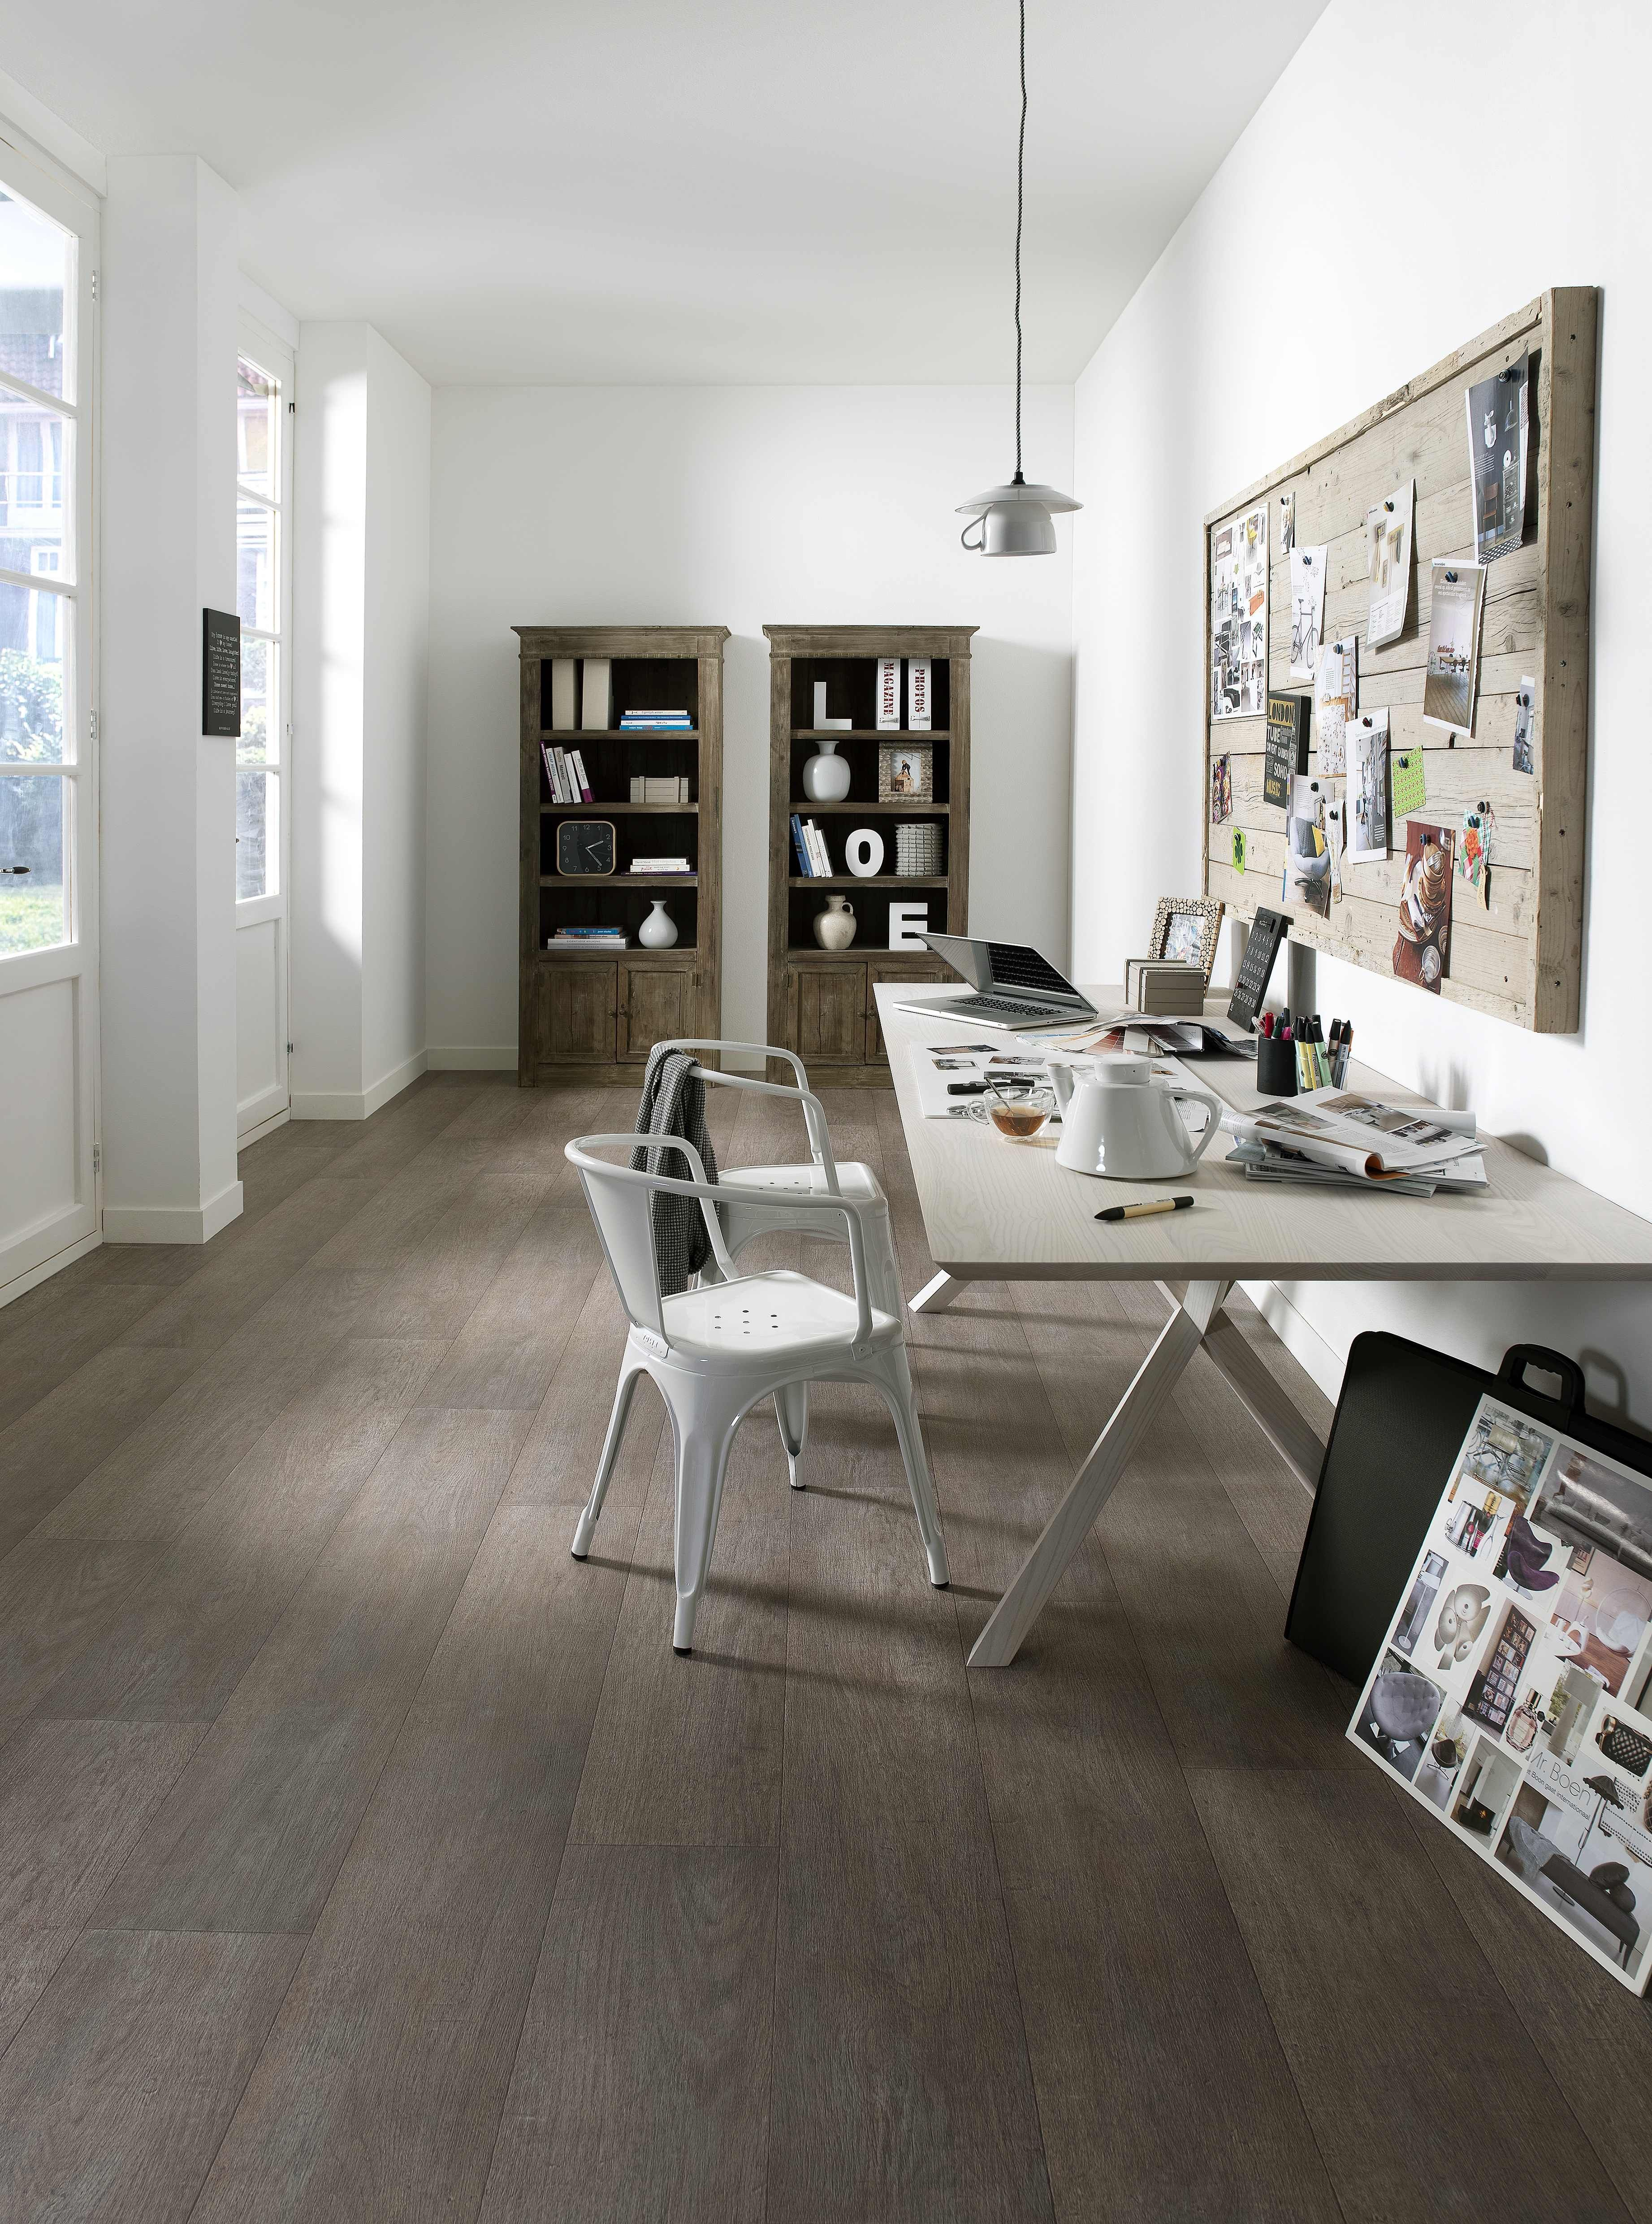 stylist and luxury tile floor designs for living rooms. Flooring in social housing  durability and design go together Forbo flooring setdesign styling by Wieteke Faay Photography